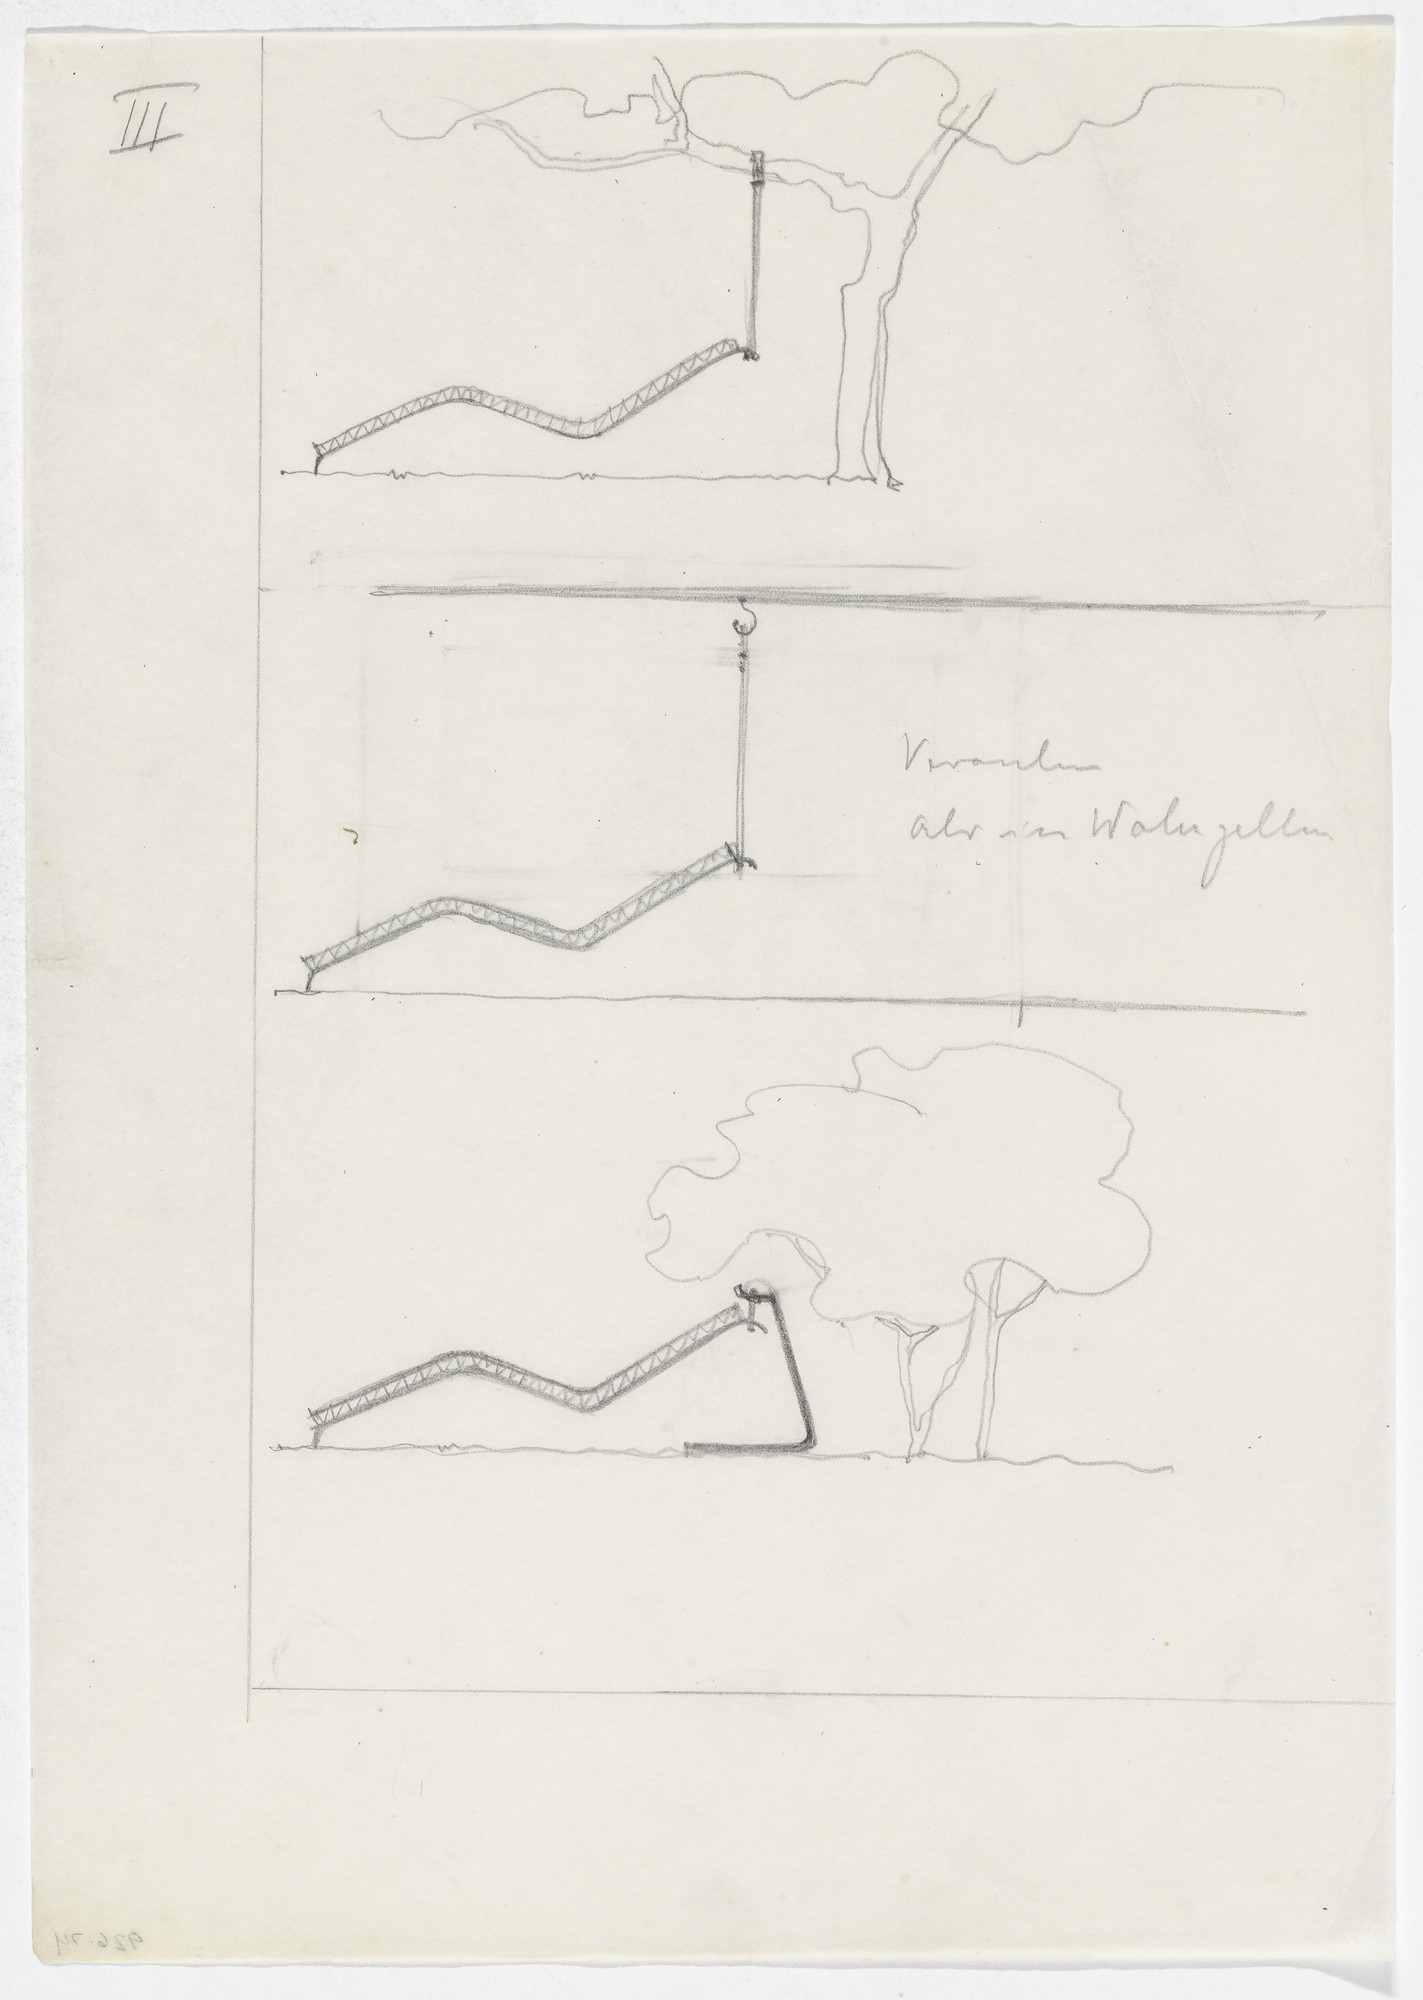 Ludwig Mies van der Rohe. Reclining Frames (Elevation sketches). 1931-1932